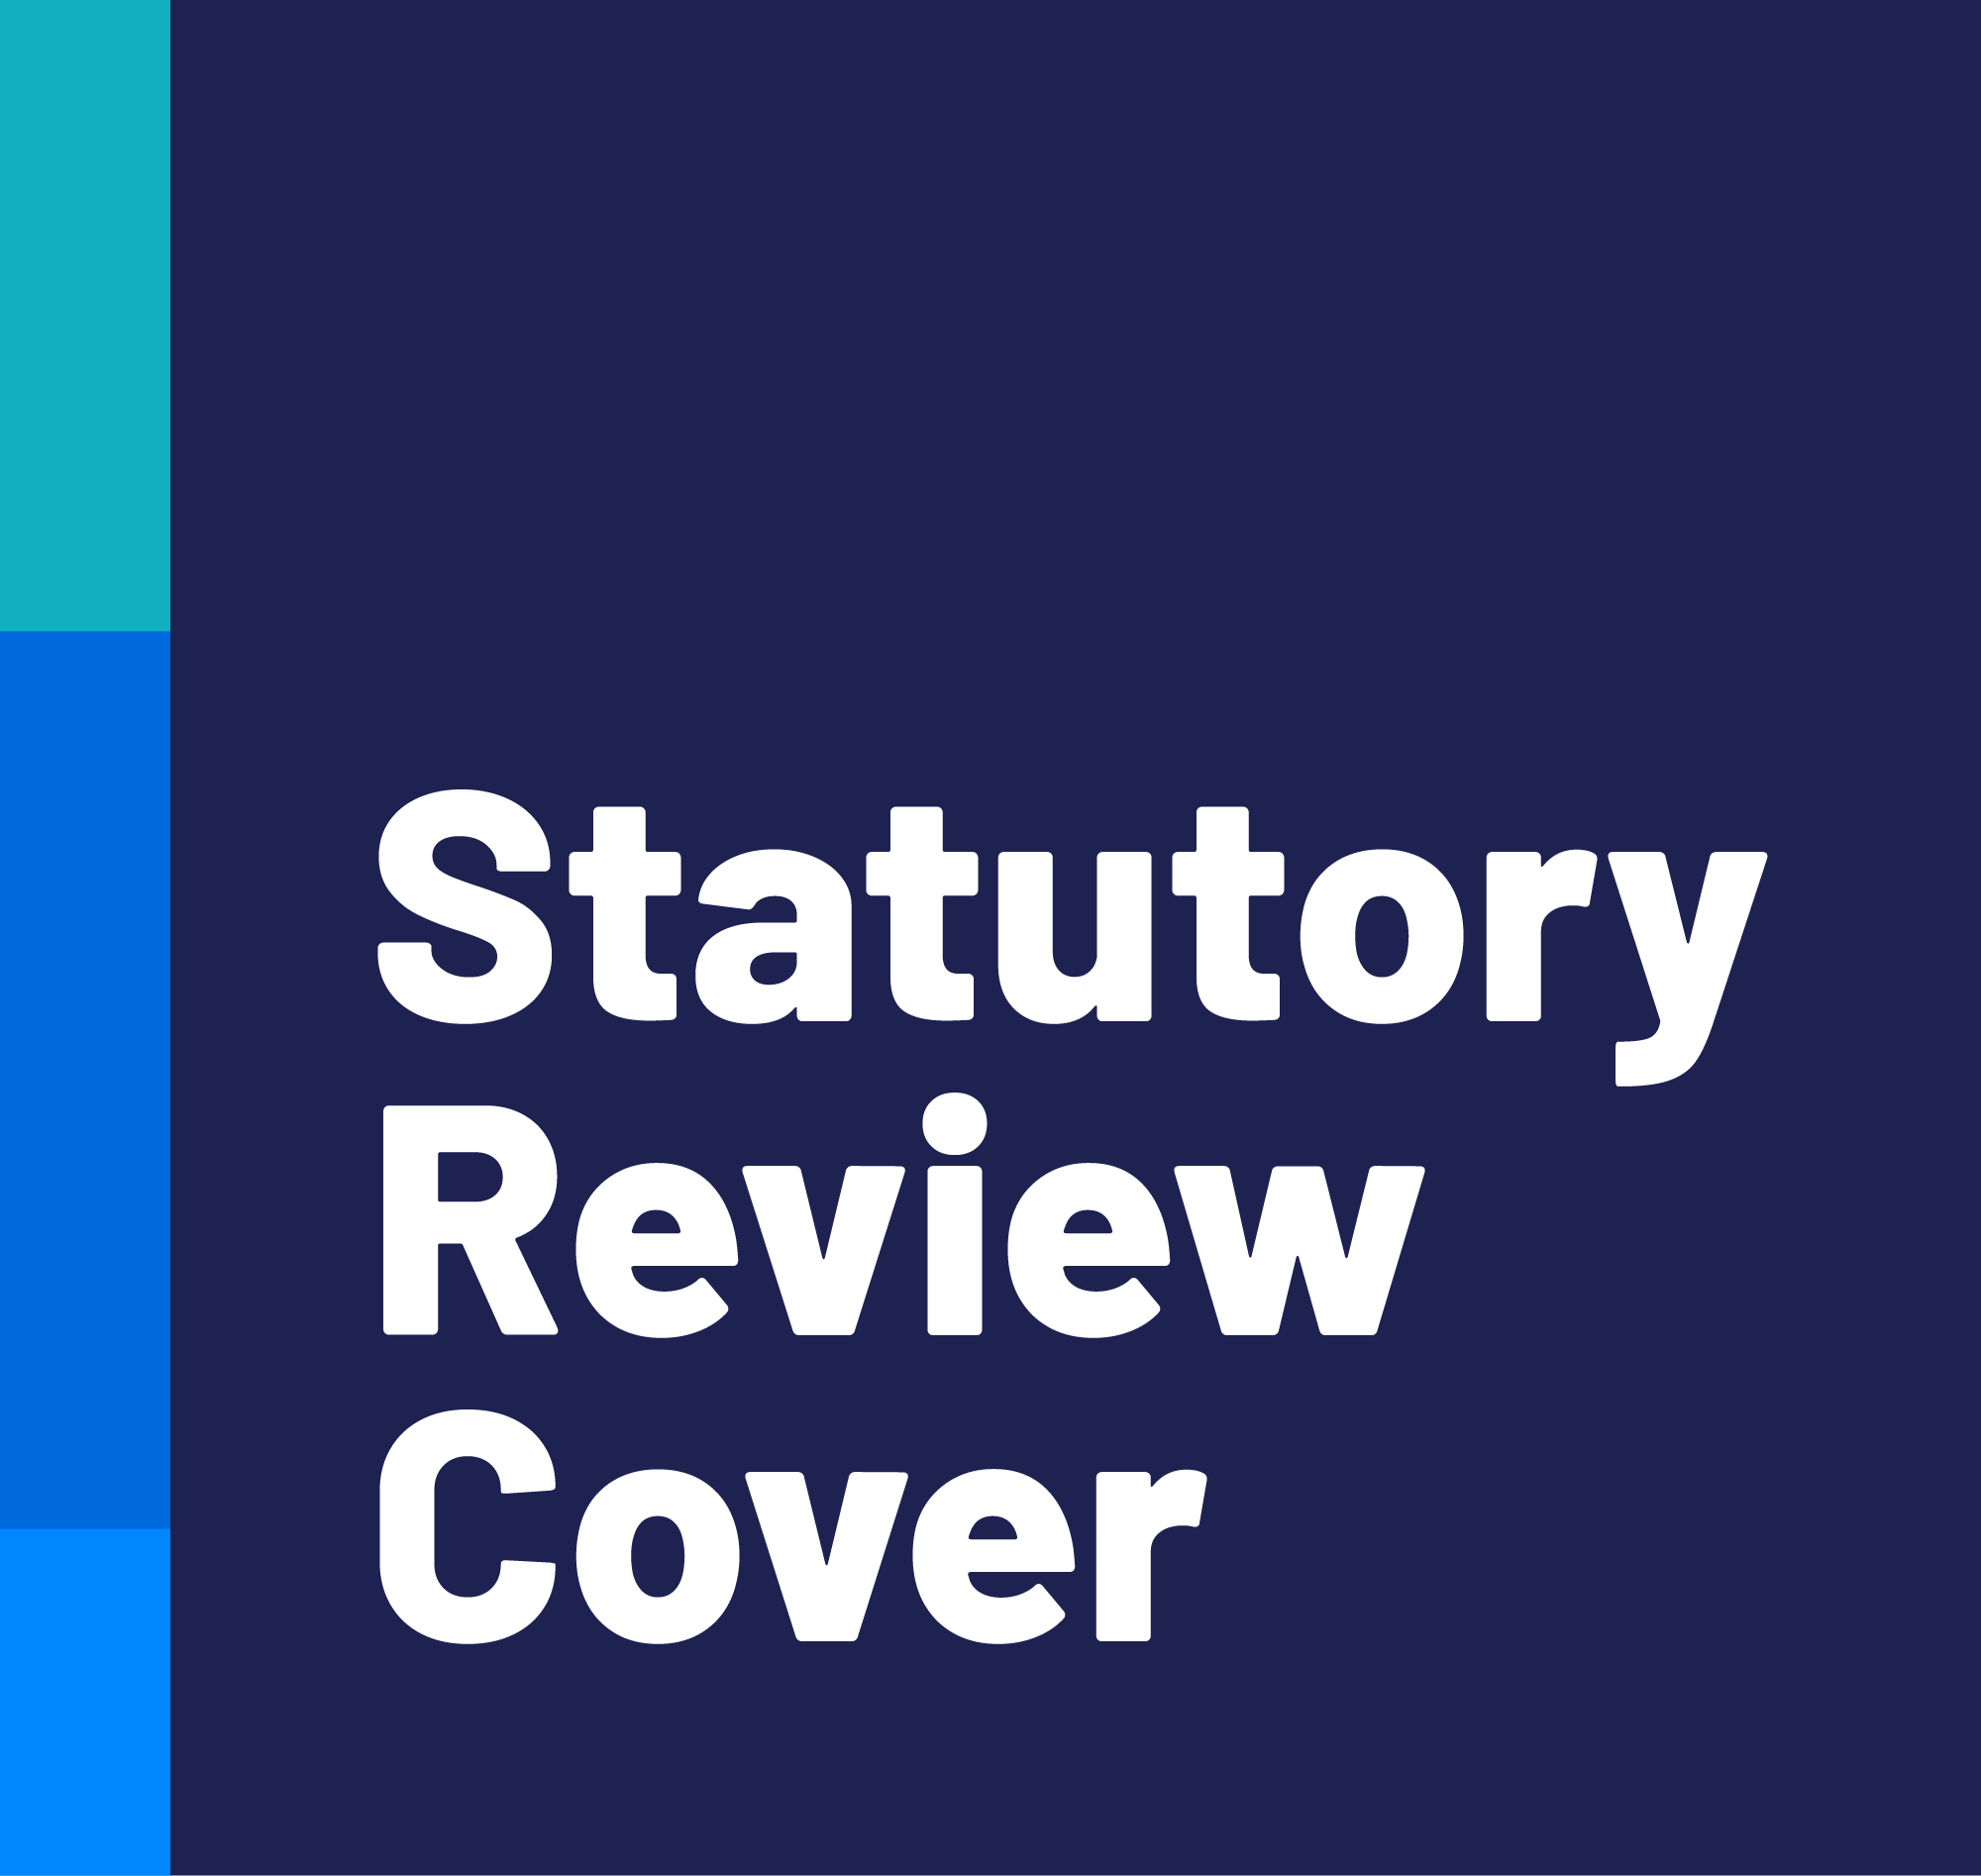 Statutory Review Cover